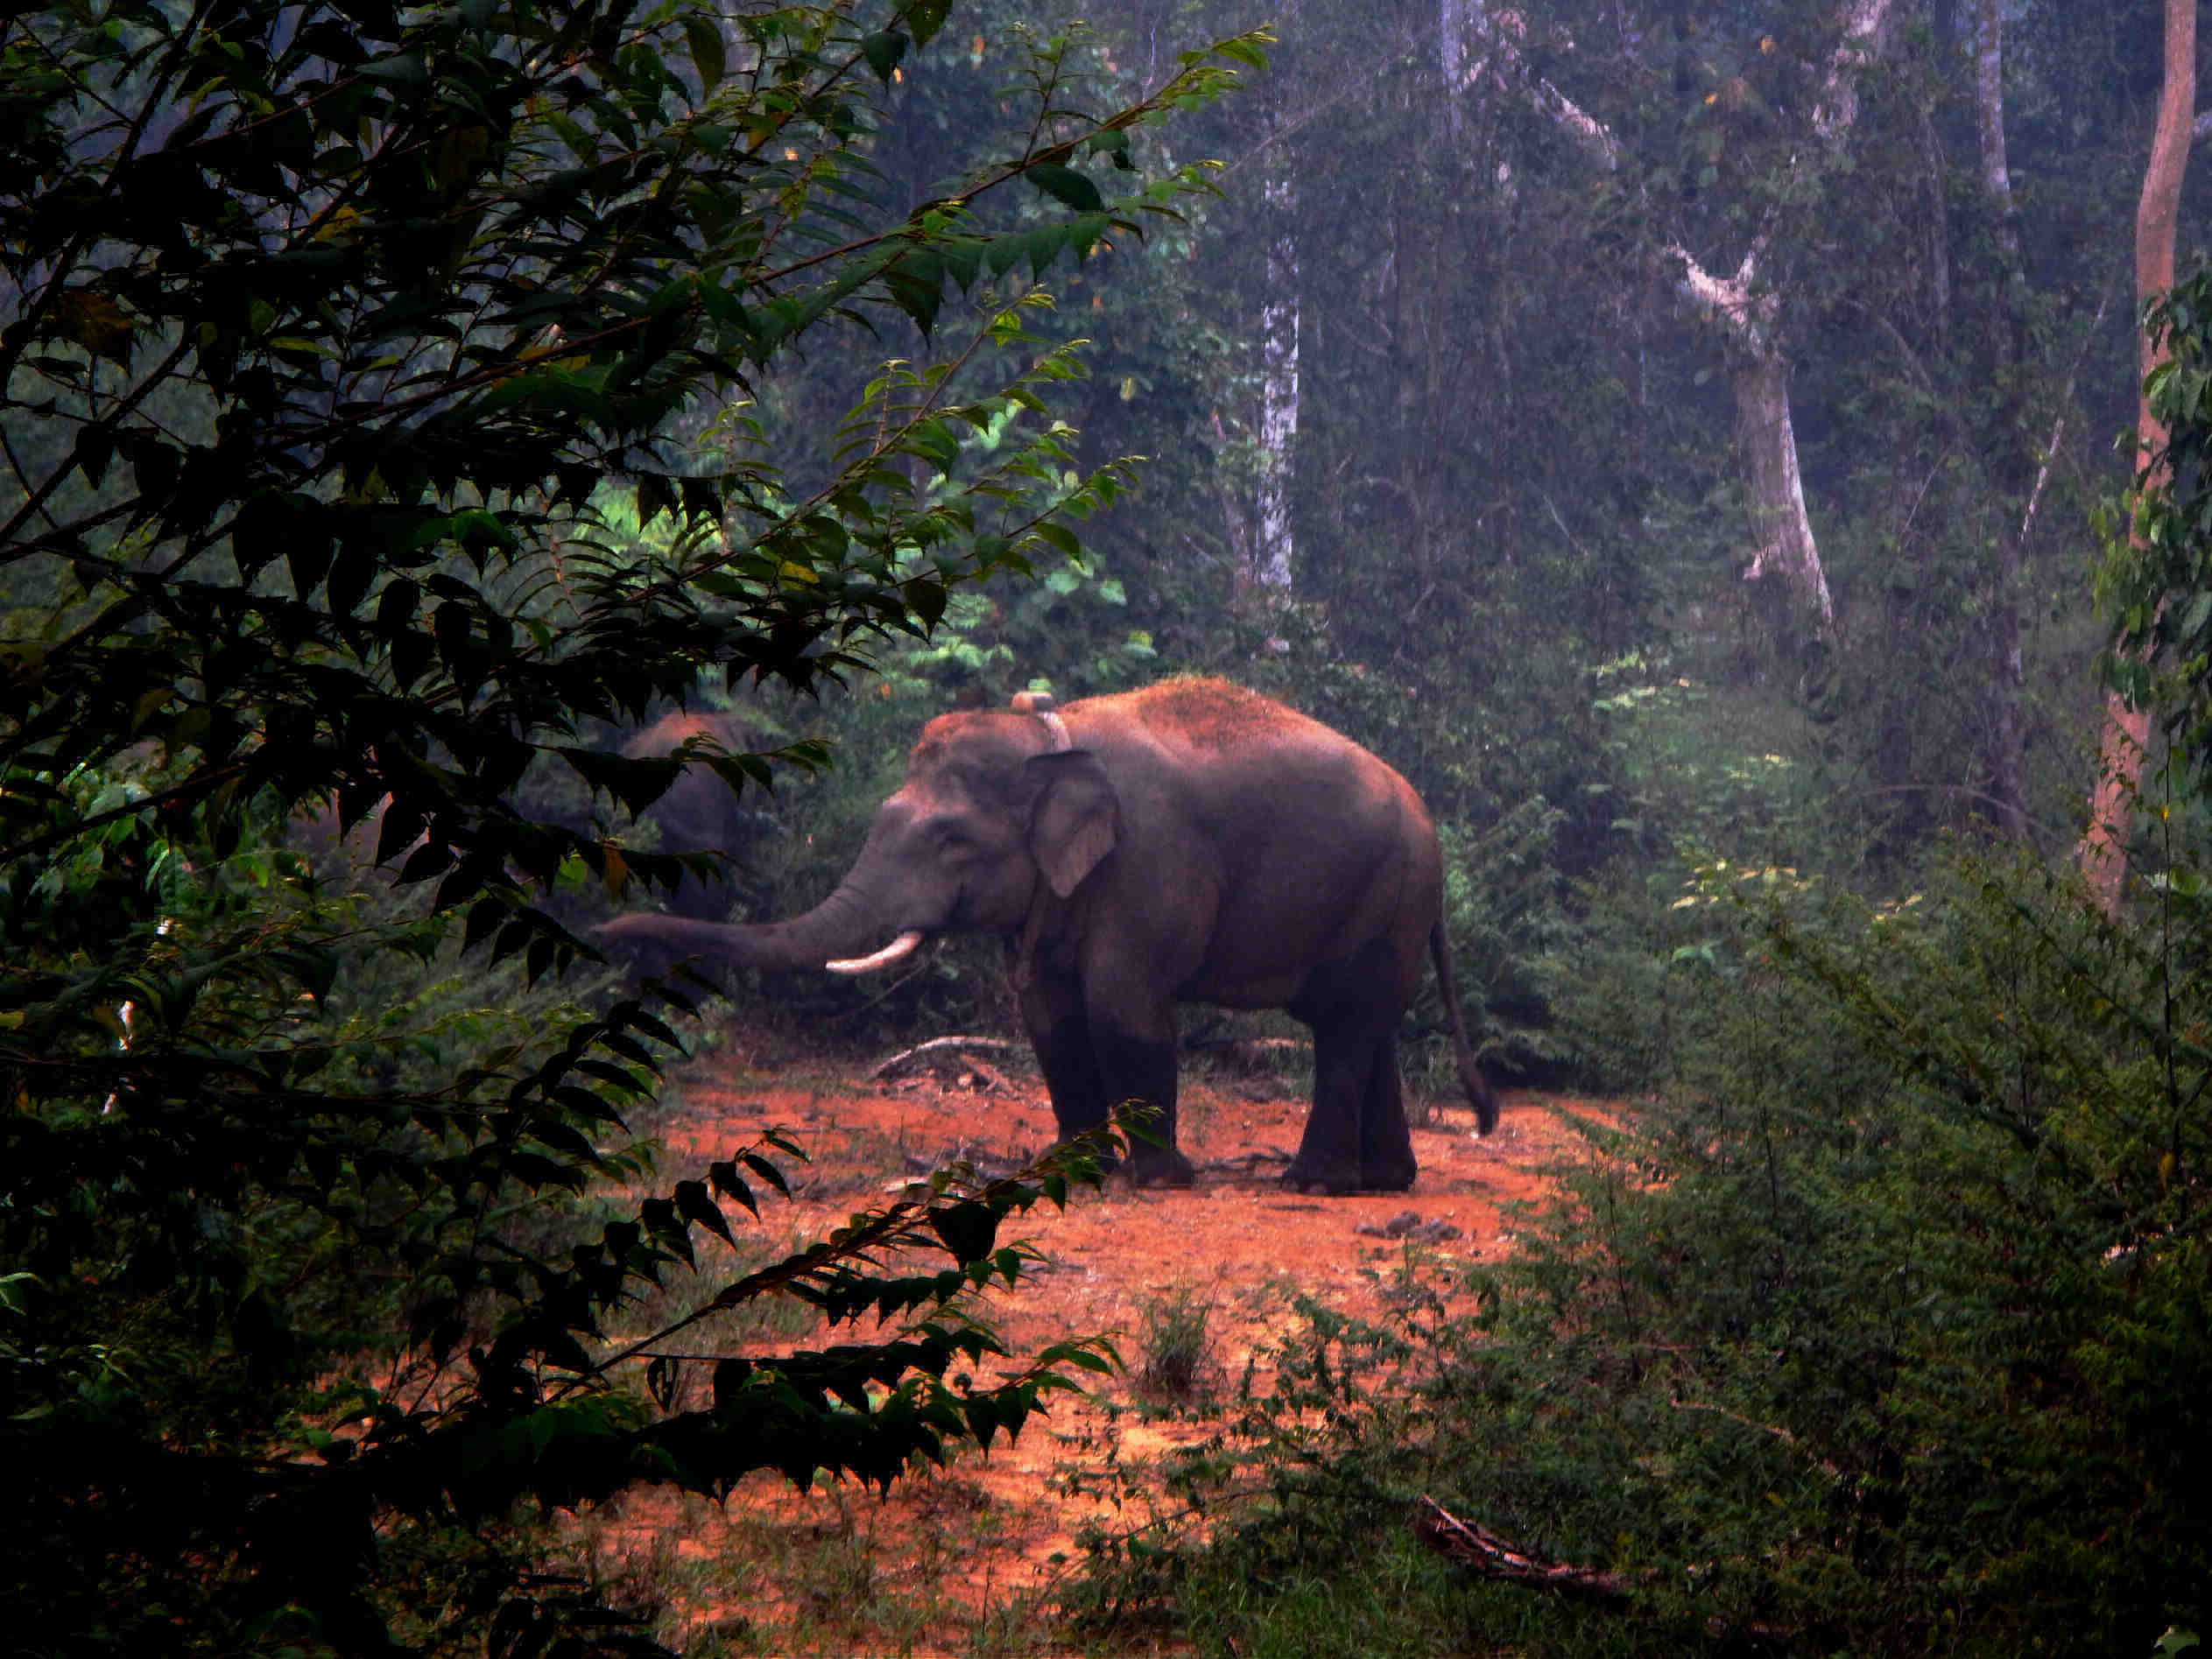 A Sumatran elephant named Dadang stands in a clearing